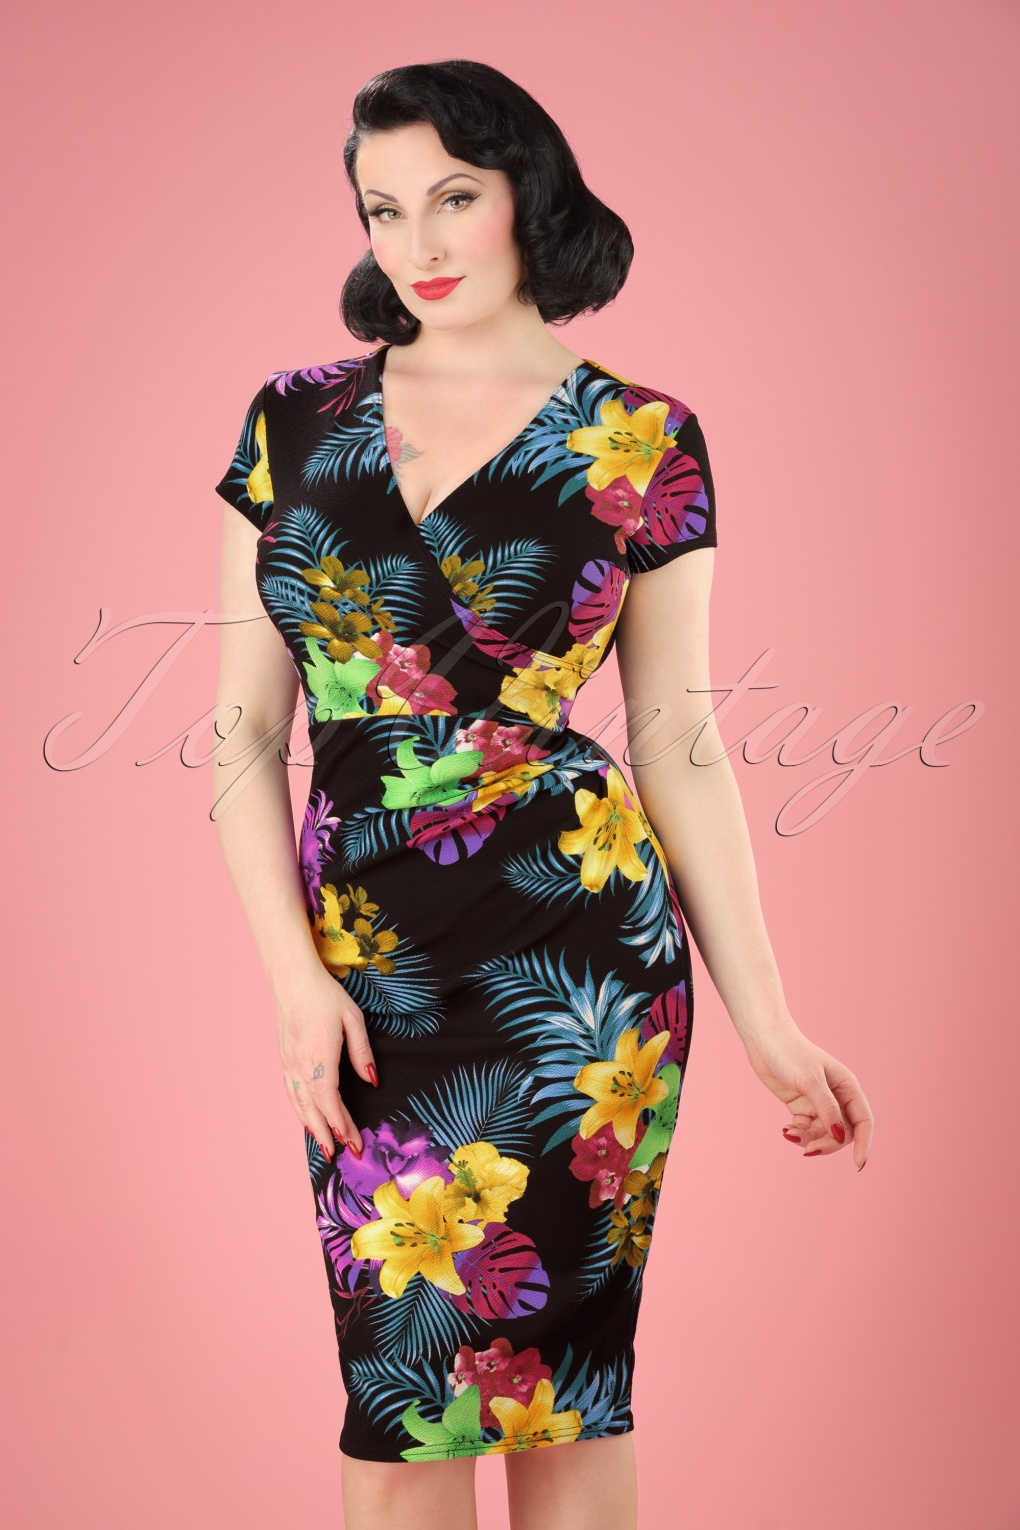 1940s Pinup Dresses for Sale 50s Madeline Floral Pencil Dress in Black £31.82 AT vintagedancer.com